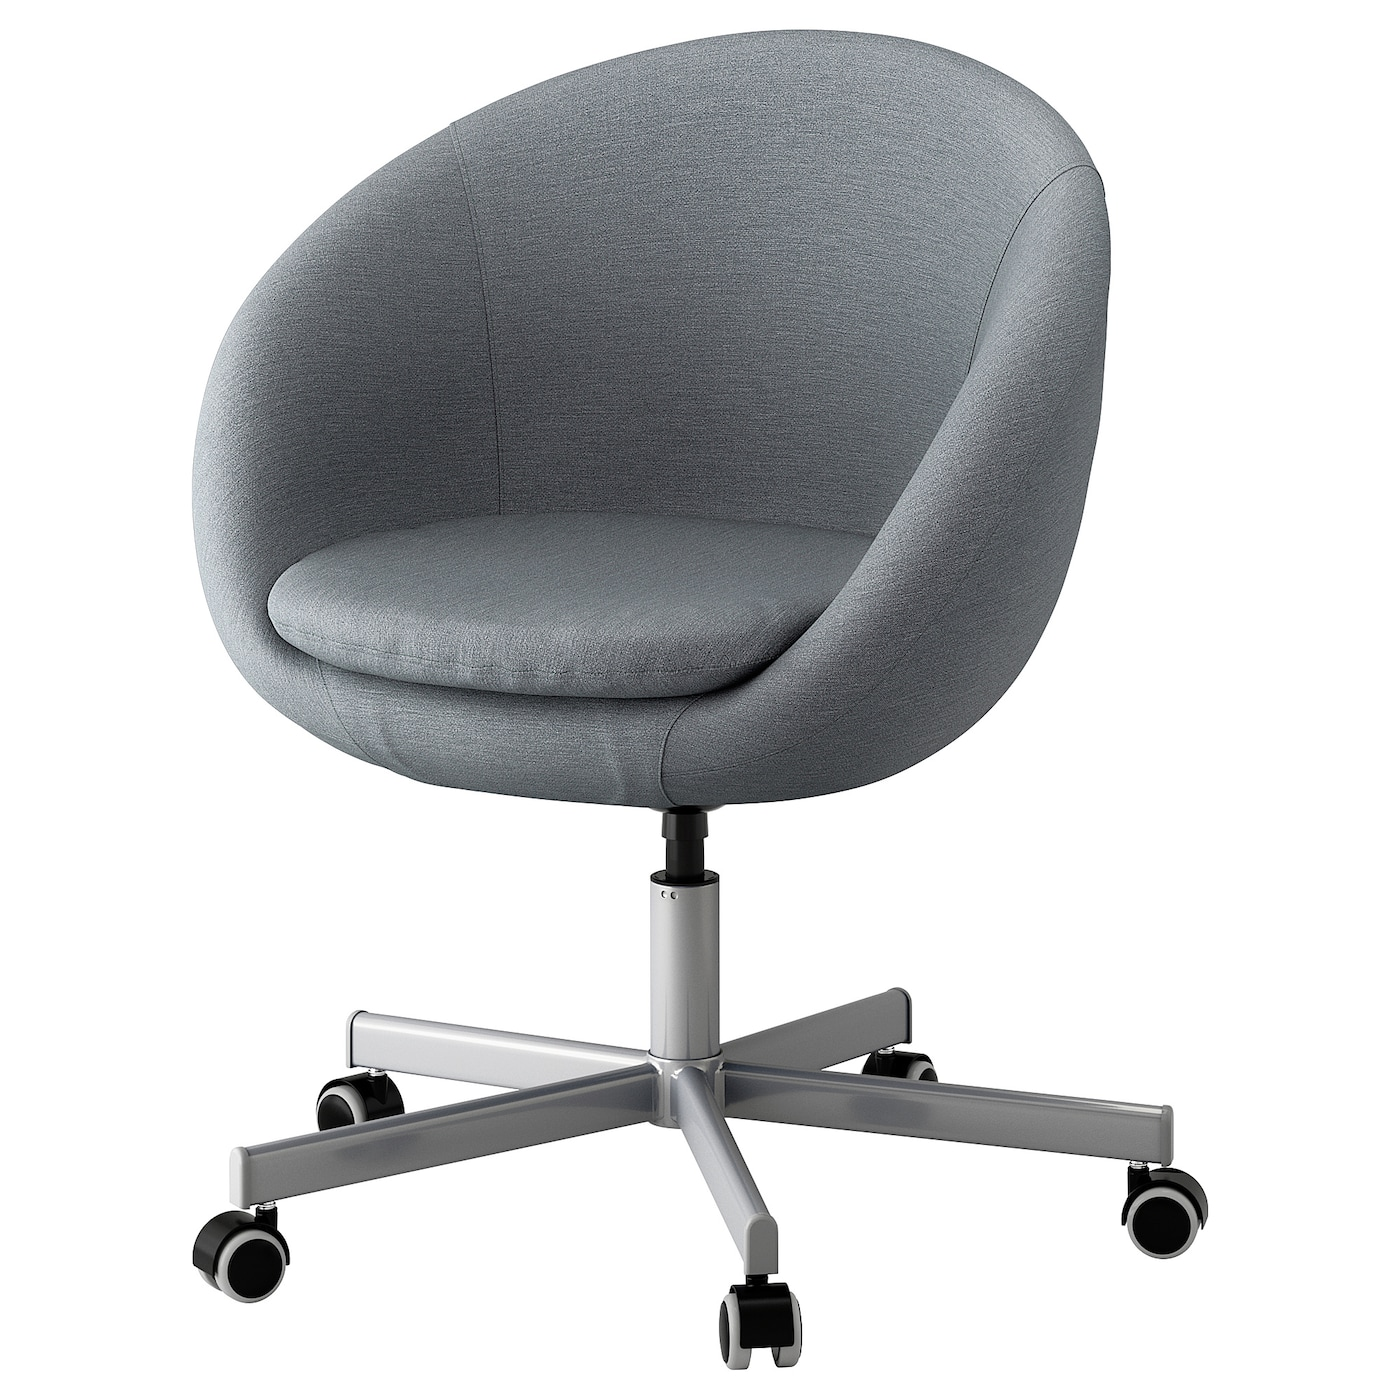 Ikea skruvsta swivel chair you sit comfortably since the chair is adjustable in height